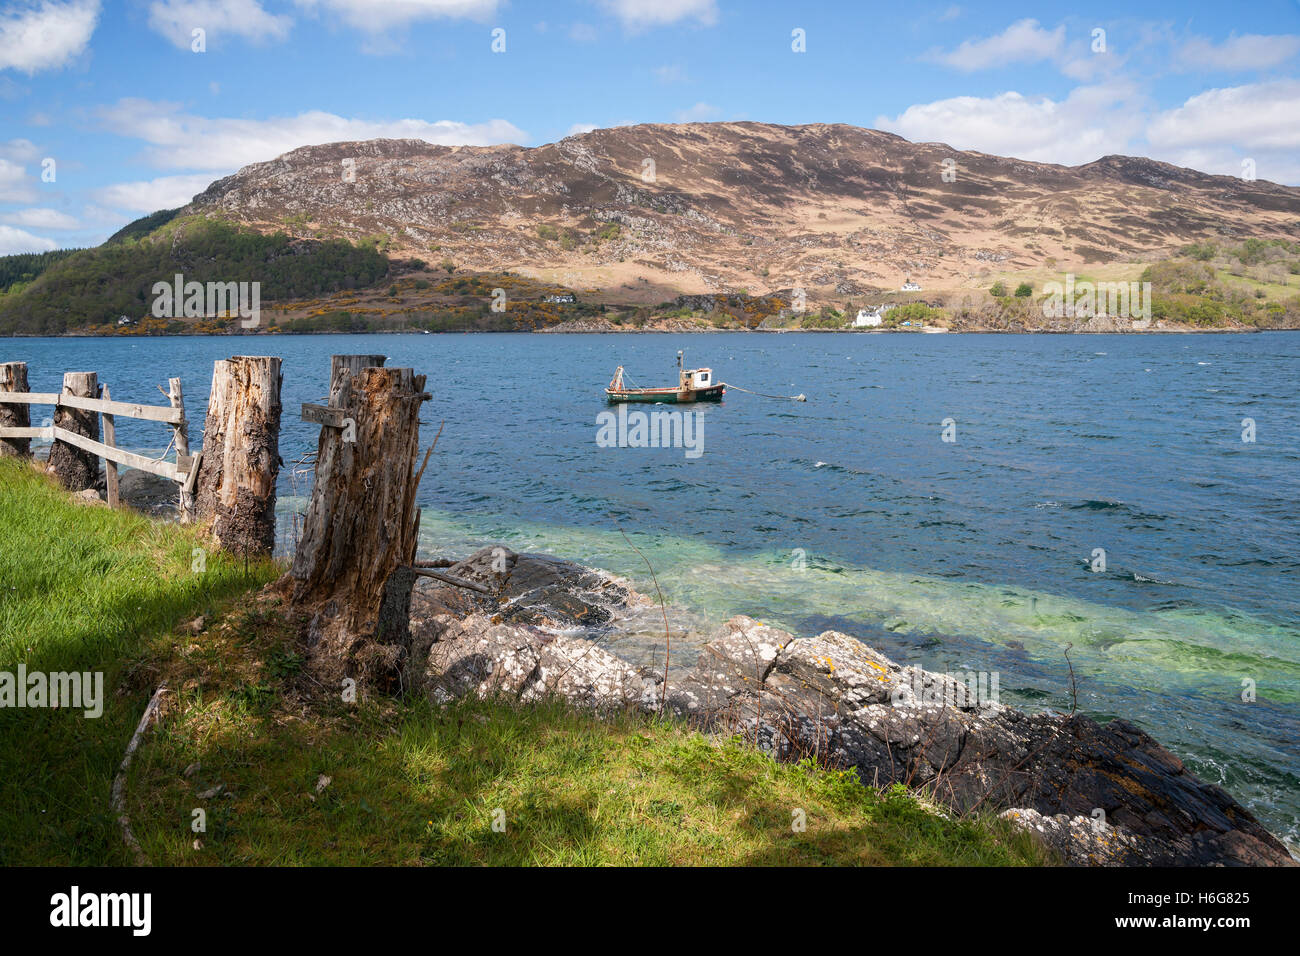 Looking across Loch Carron at South Strome, Kyle of Lochalsh,  Highland, Scotland, UK - Stock Image